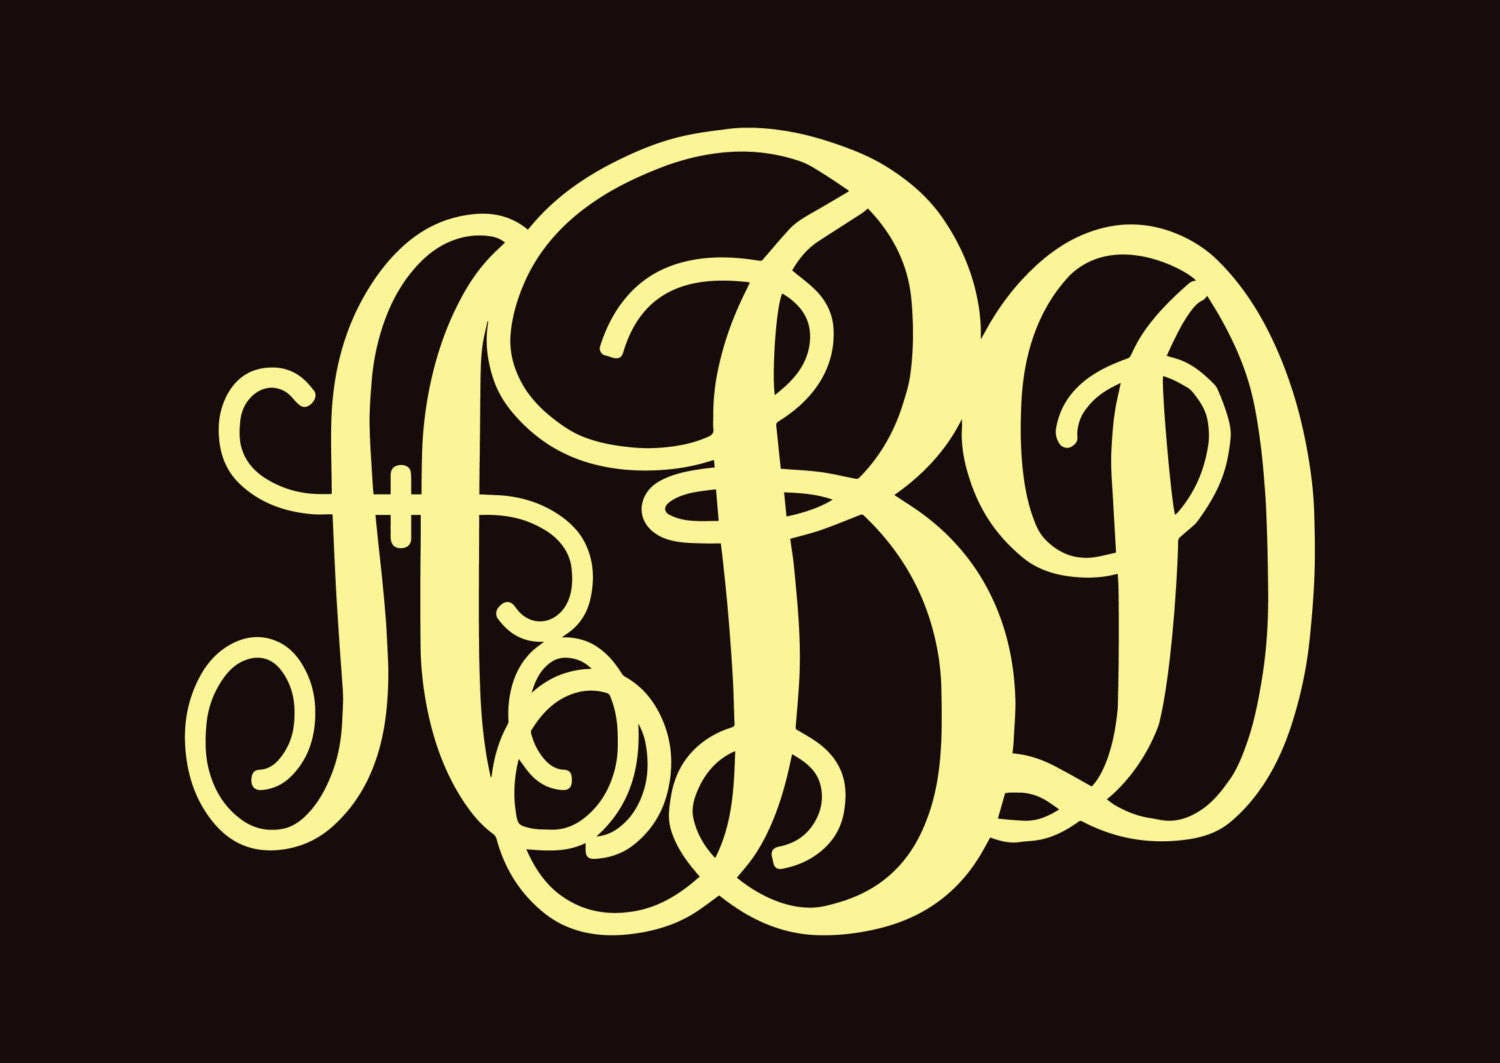 Newlywed Gift - Home decor - WOODEN MONOGRAM Wall Letters Unpainted ...